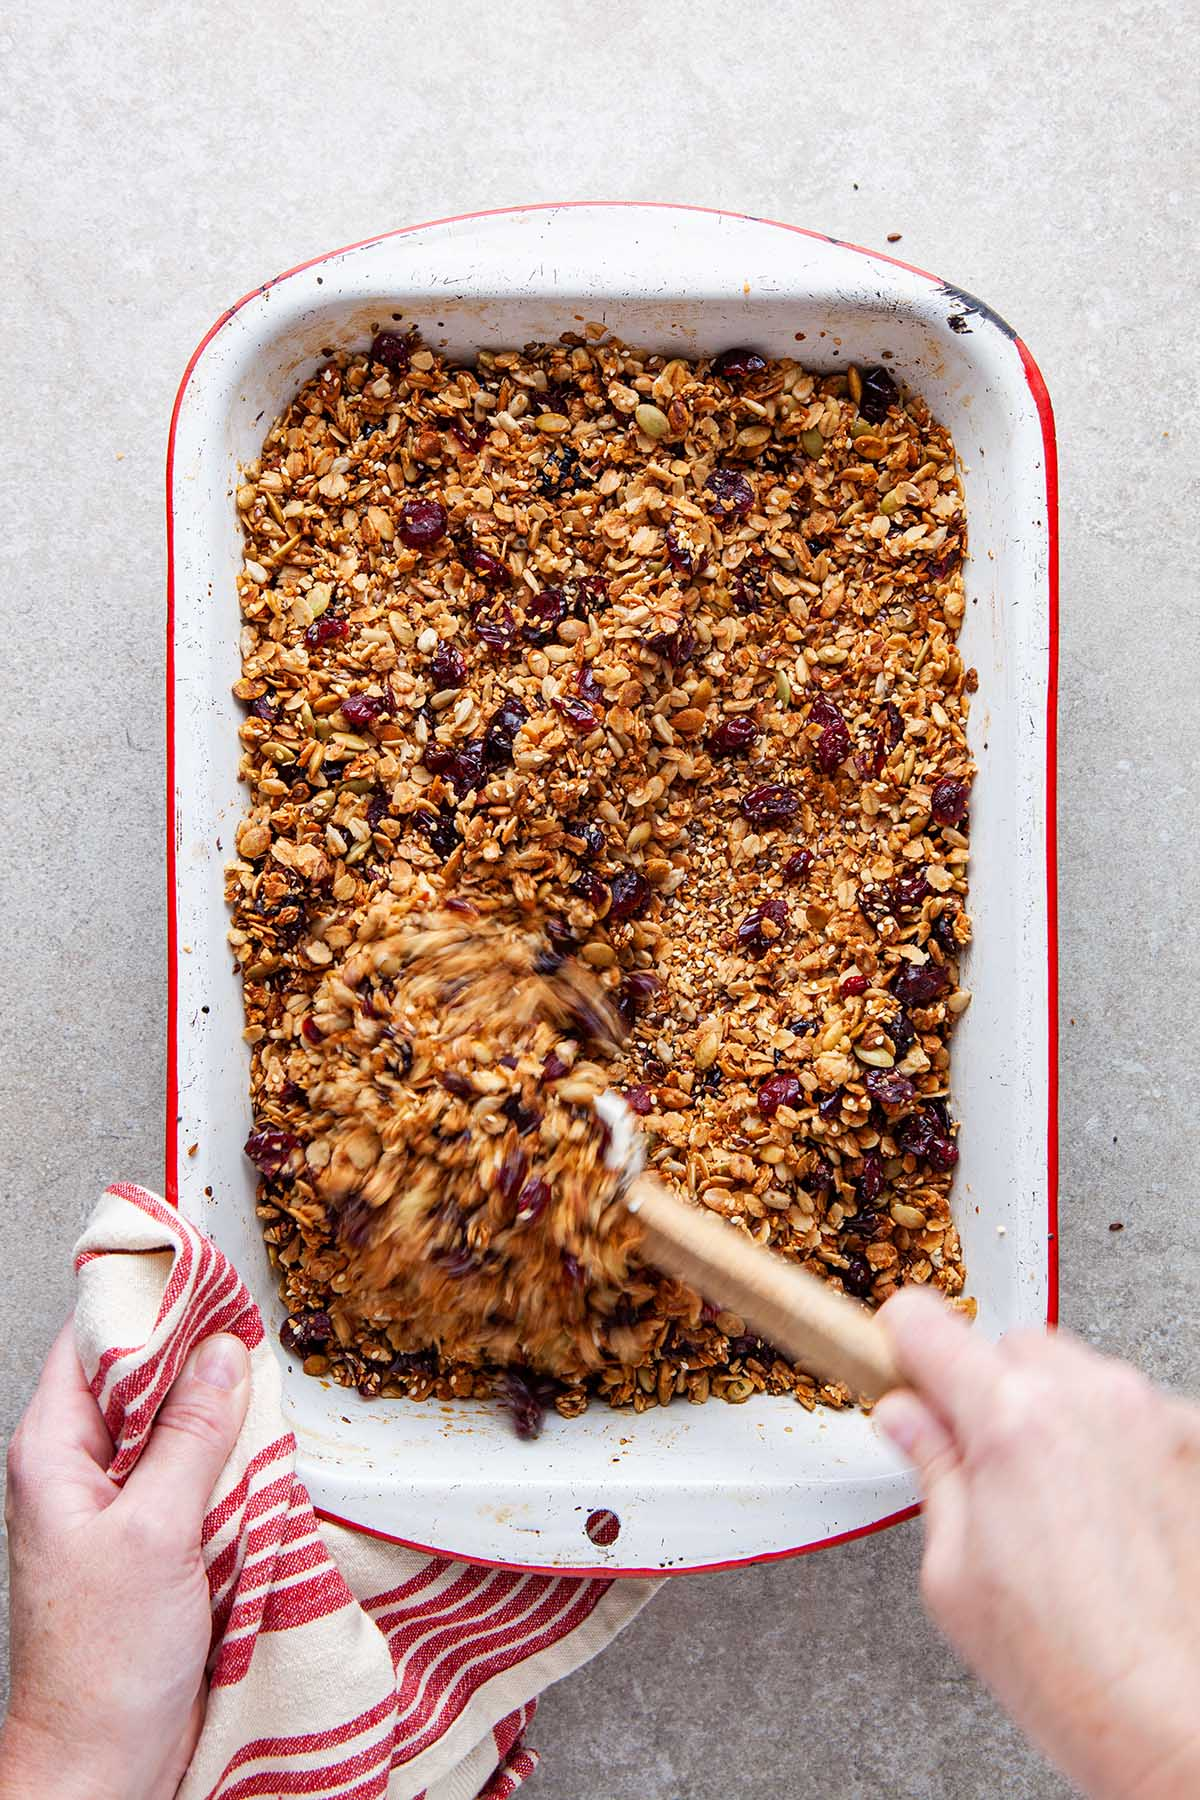 A hand stirring a baking pan filled with granola.